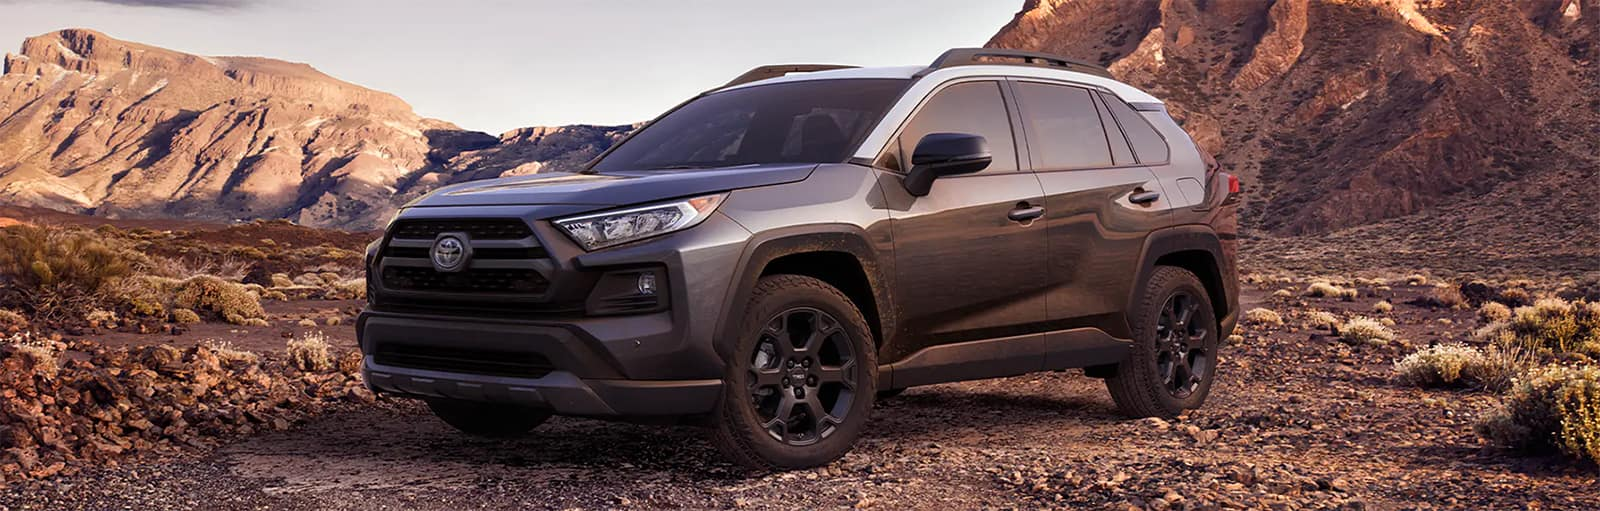 2020 RAV4 Arriving Soon